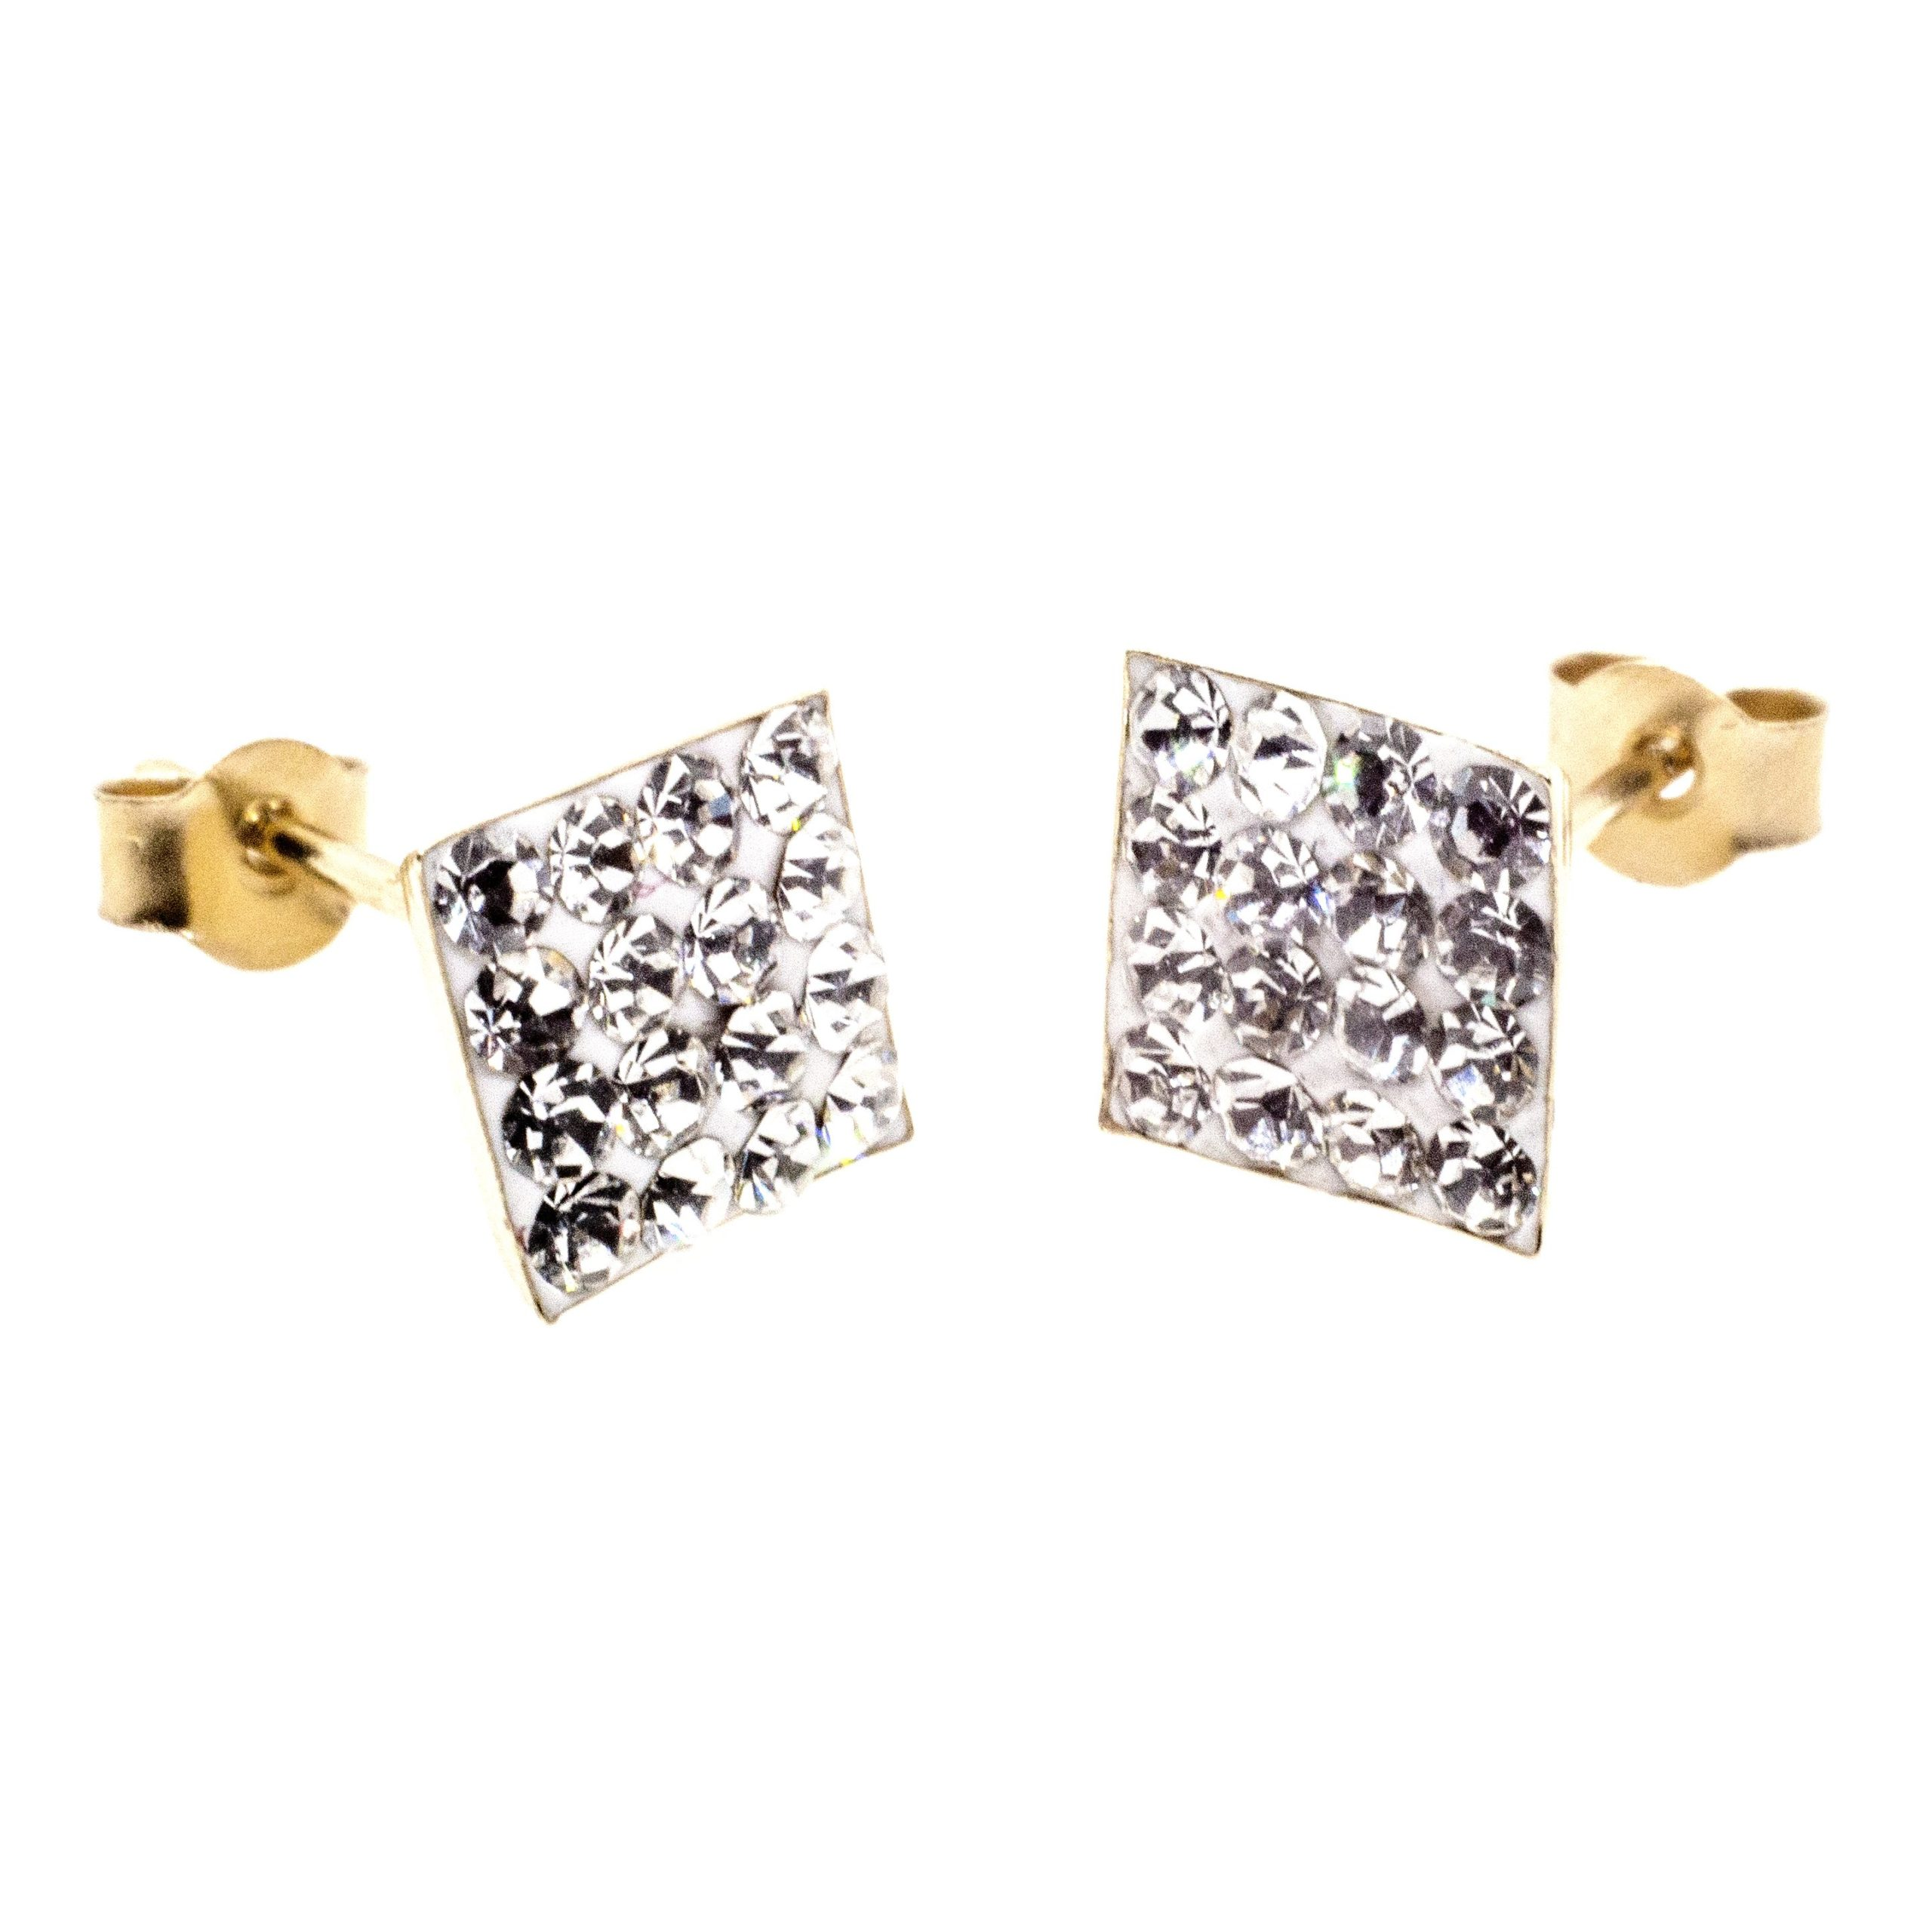 7mm square stud earring 9ct gold with Austrian crystal gems